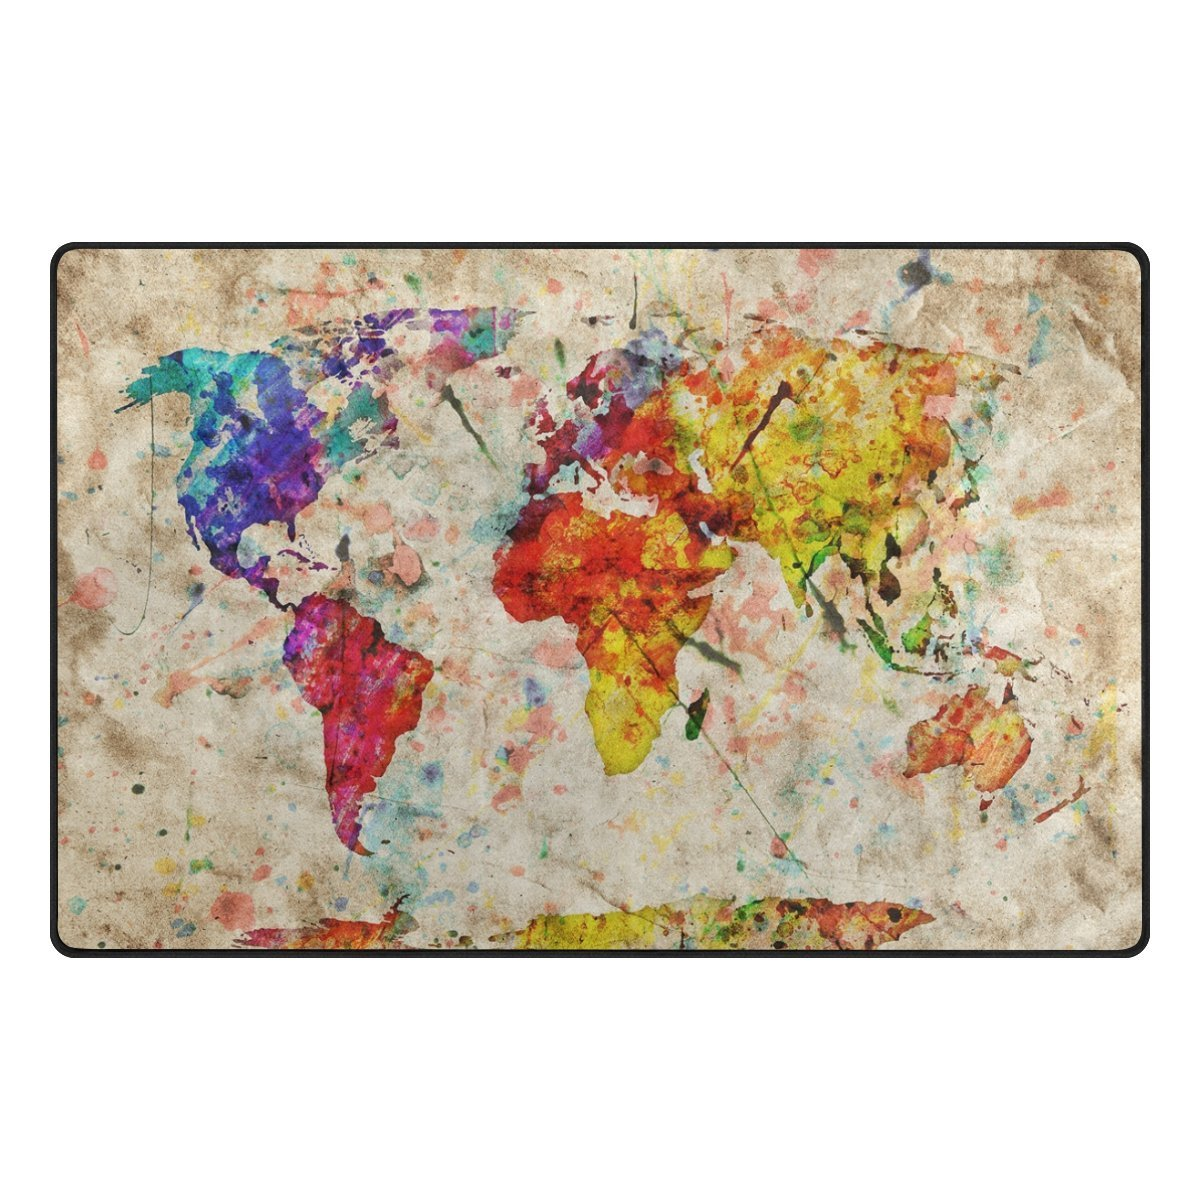 World Map Baby Rug: Colorful Vintage World Map Kids Children Area Rugs Non